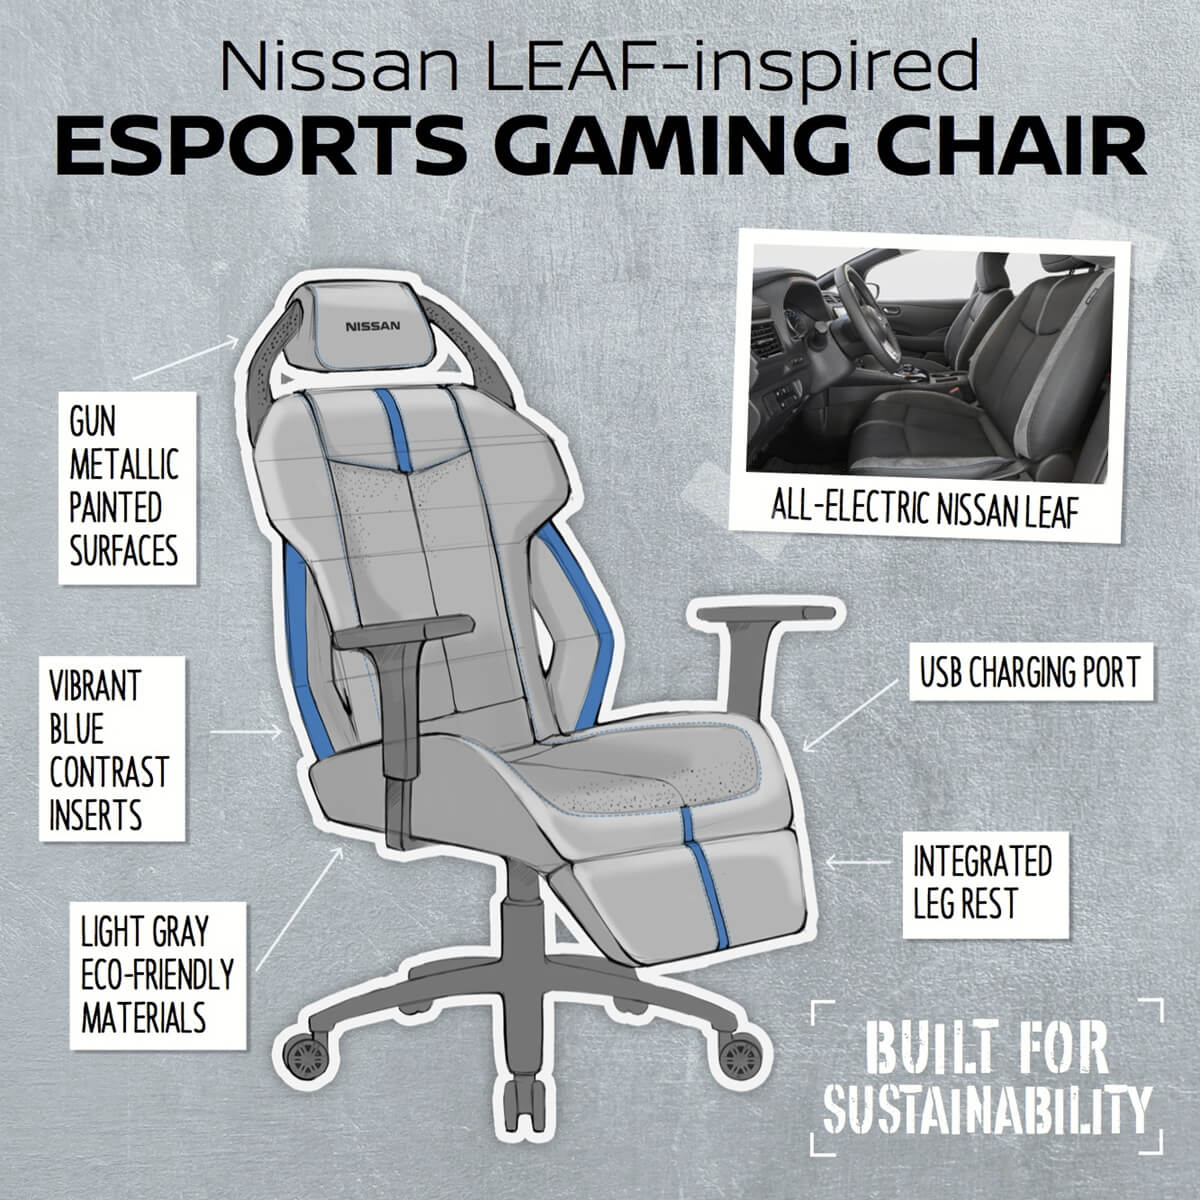 Ultimate-esports-gaming-chairs-LEAF-source.jpg